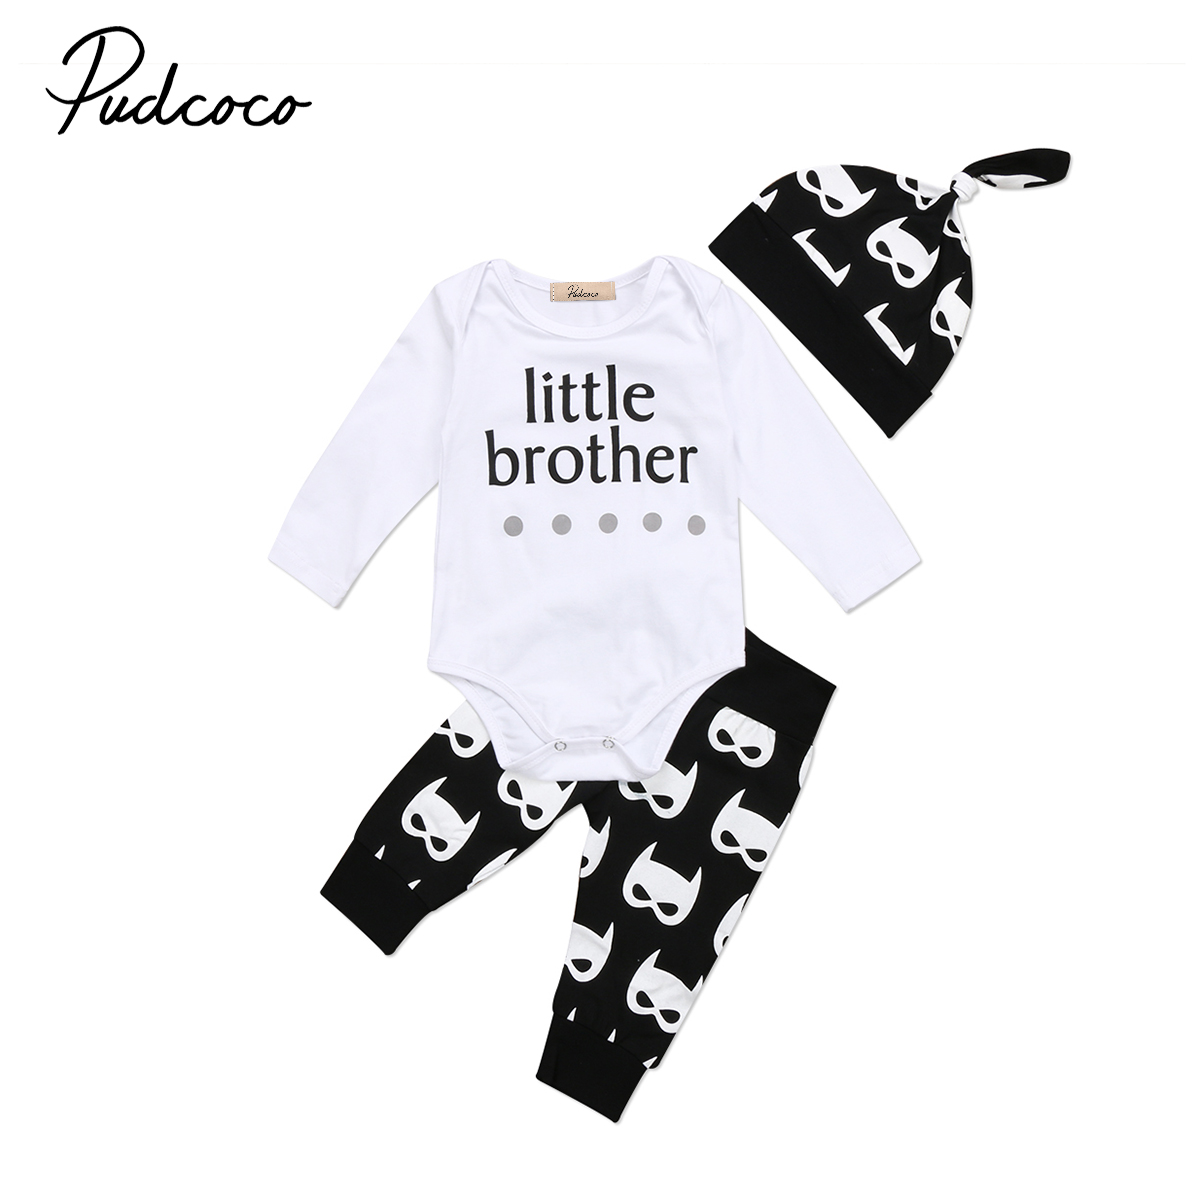 Toddler Newborn Baby Boys Letter Long Sleeves Tops Romper+cartoon Long Pants+hat 3pcs Outfits Set Clothes 0-24m